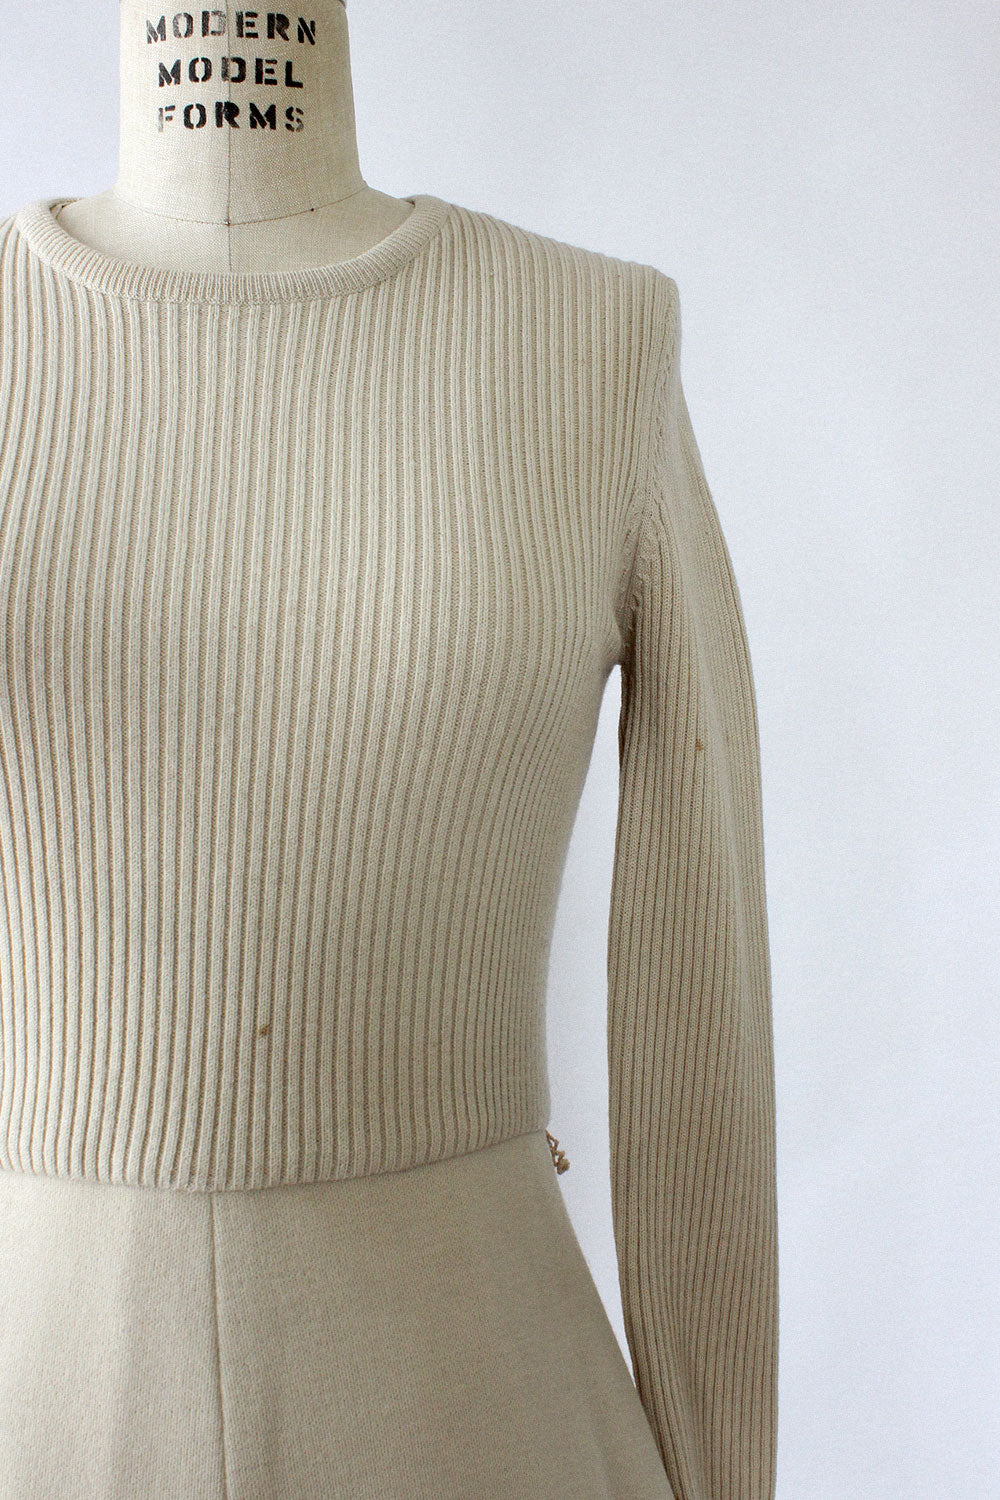 Ciao Lait Sweater Dress S/M